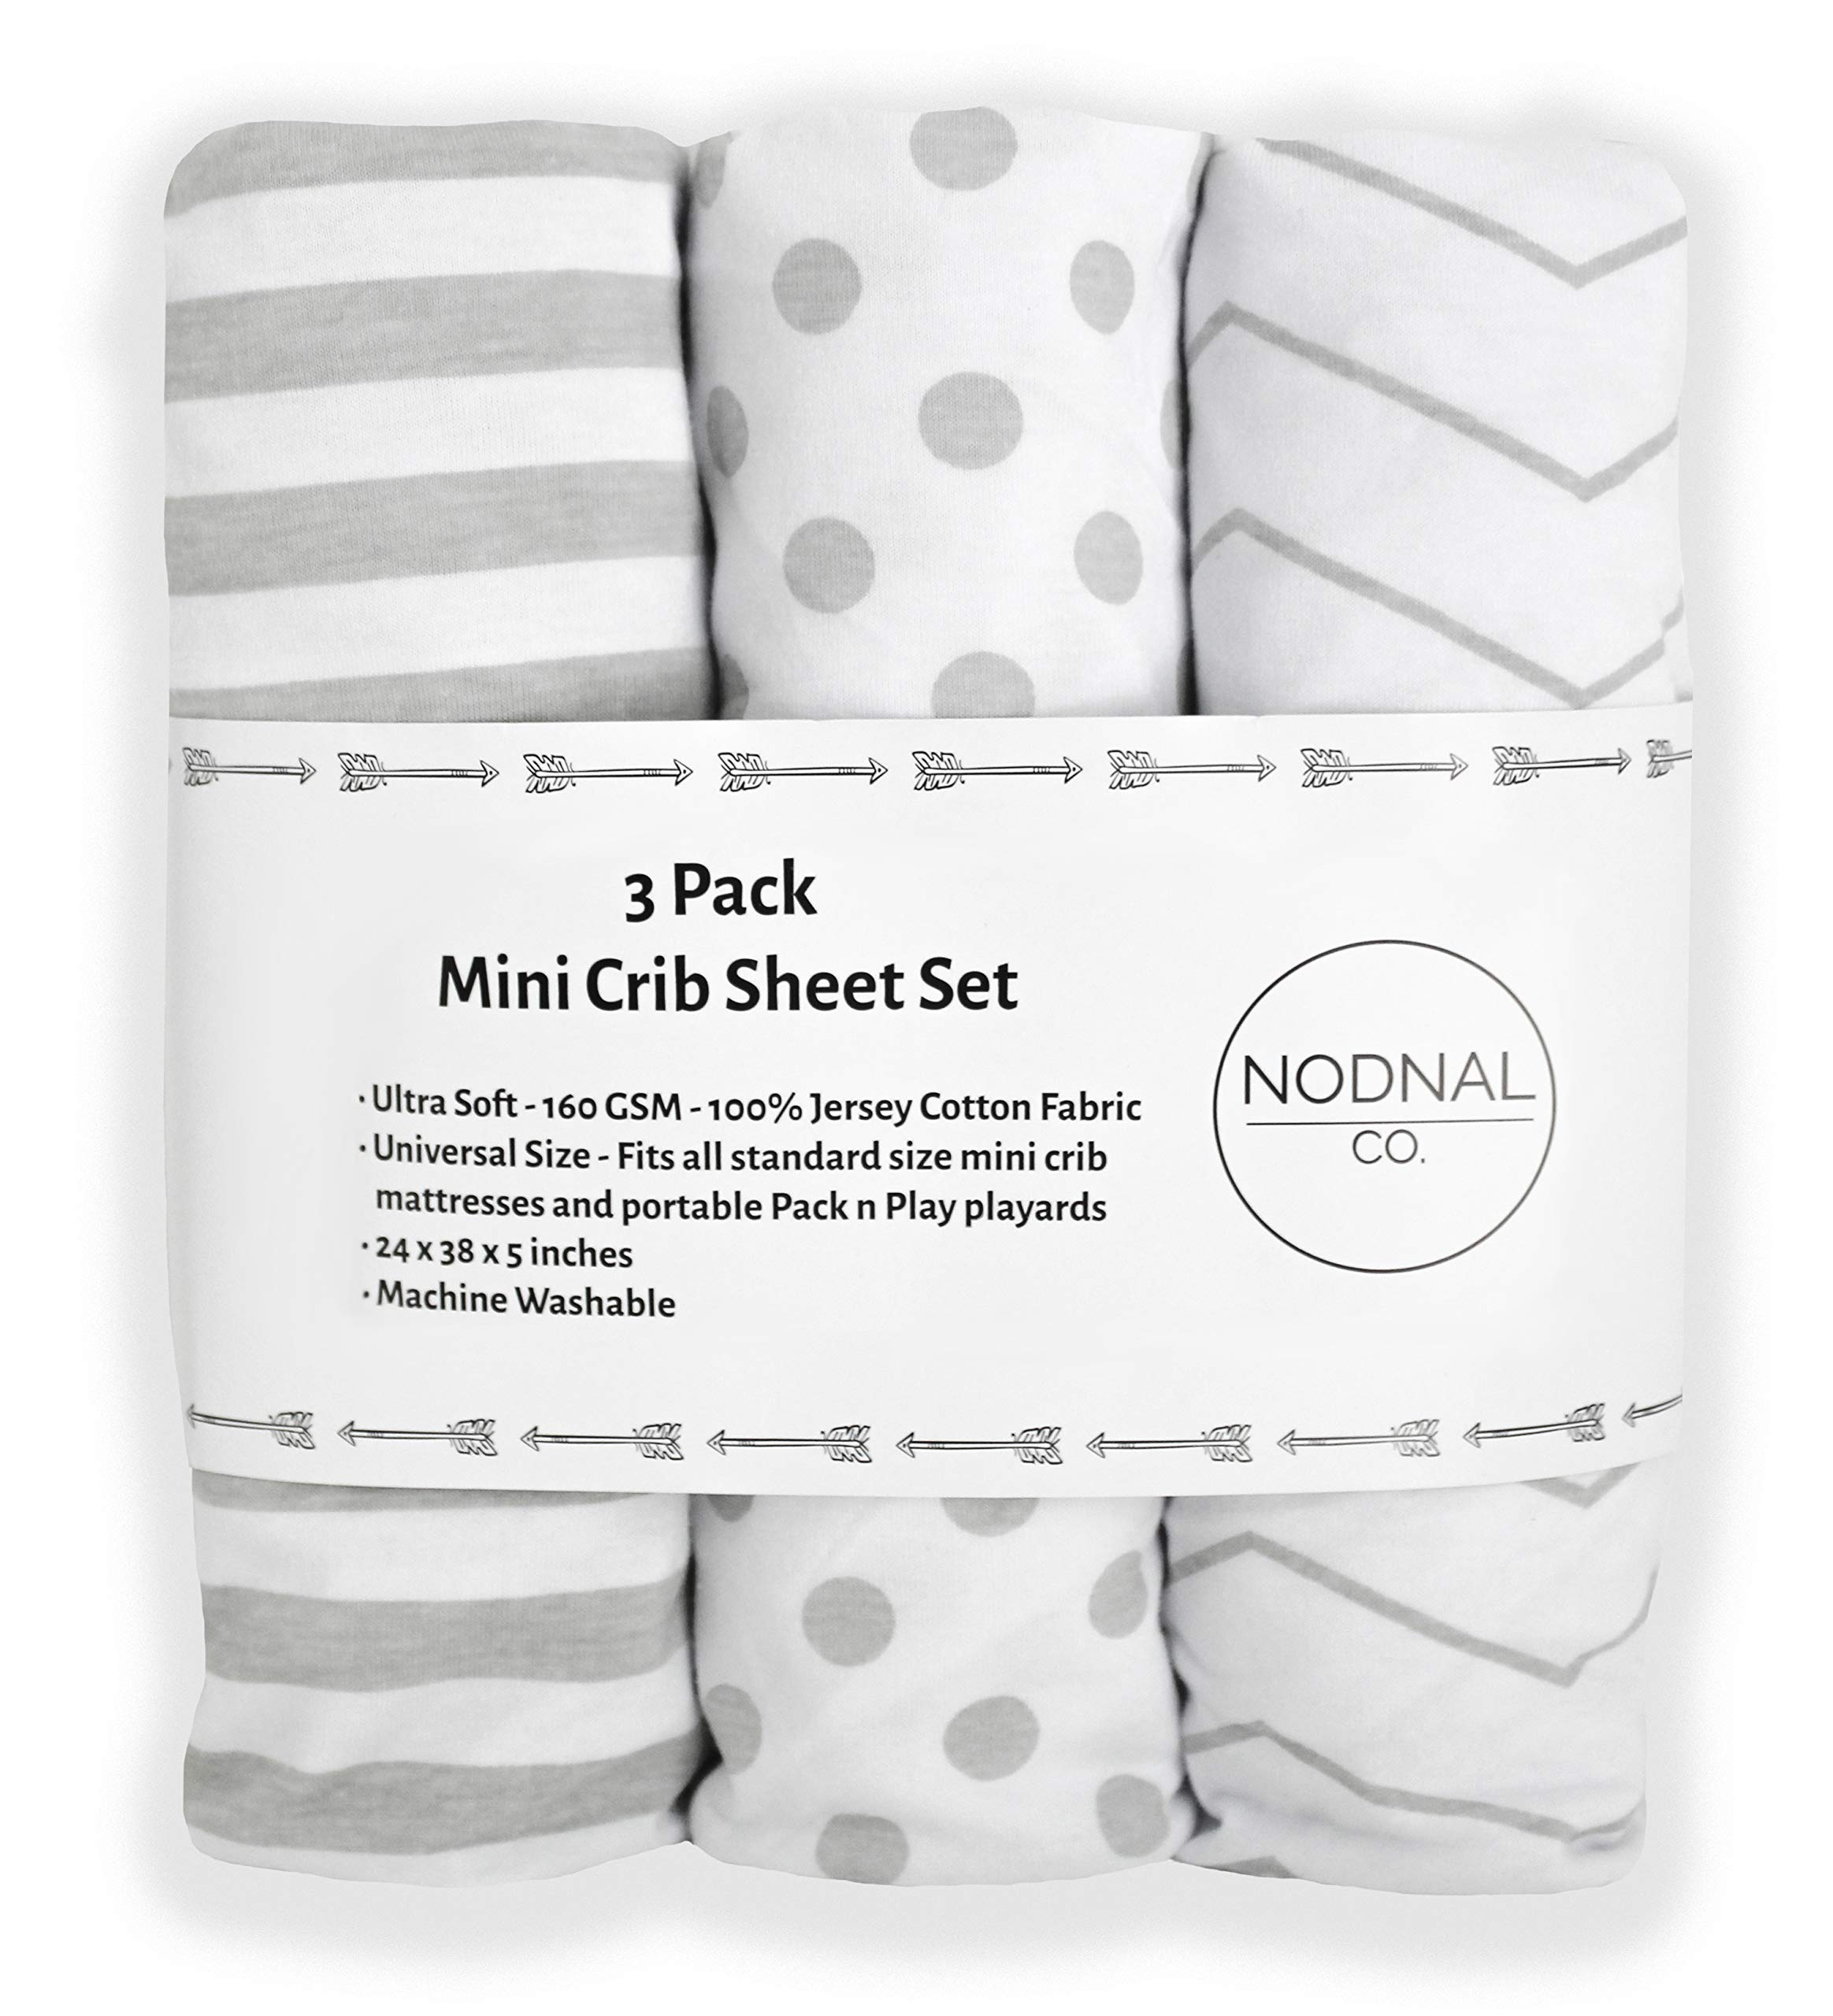 NODNAL CO. Pack n Play Playard Portable Mini Crib Fitted Sheets Set 3 Pack 100